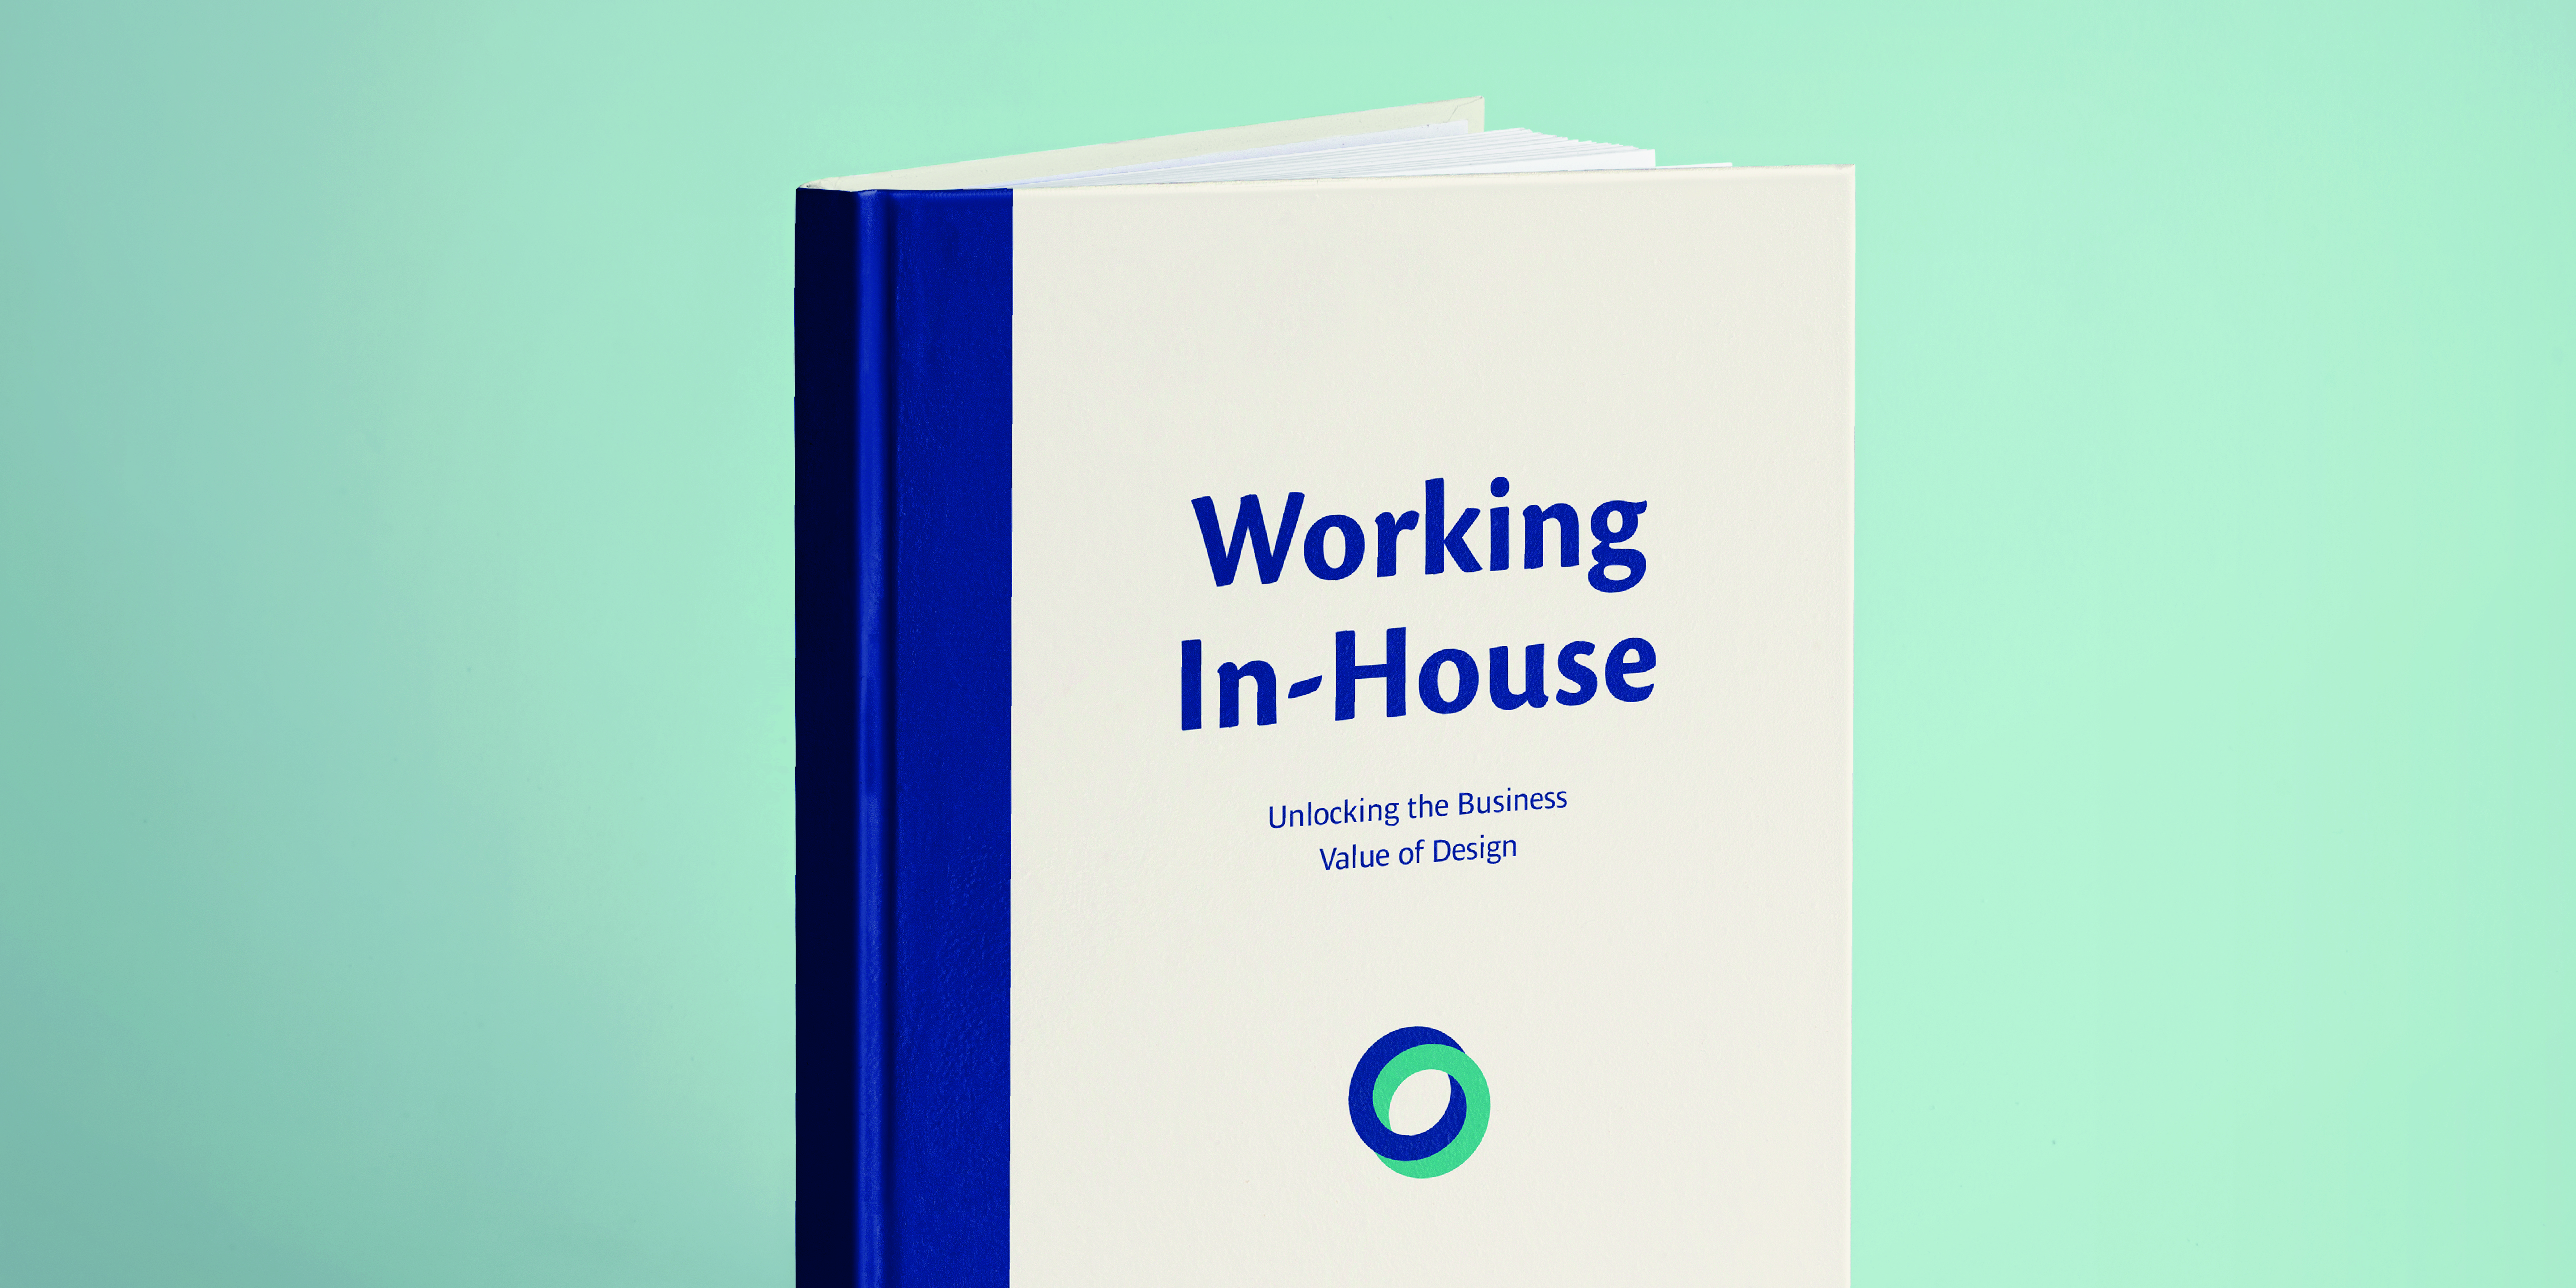 Working In-House – Unlocking the Business Value of Design